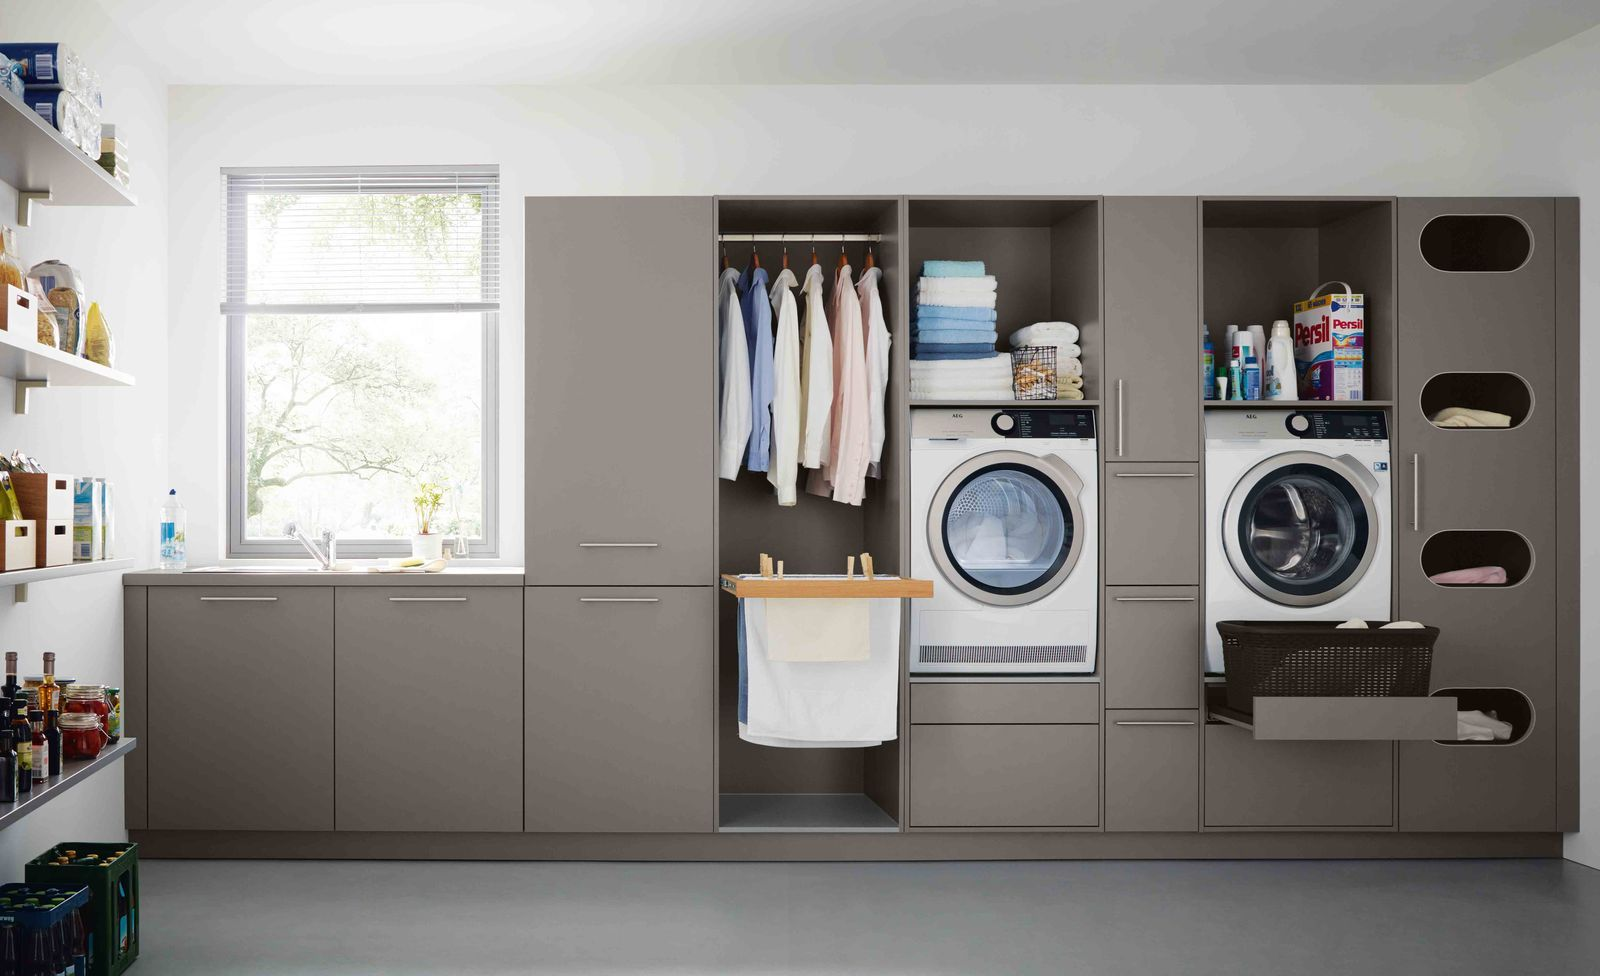 Make Everyday Tasks Simple With These Utility Room Storage Ideas Utility Room Storage Laundry Room Storage Basement Laundry Room